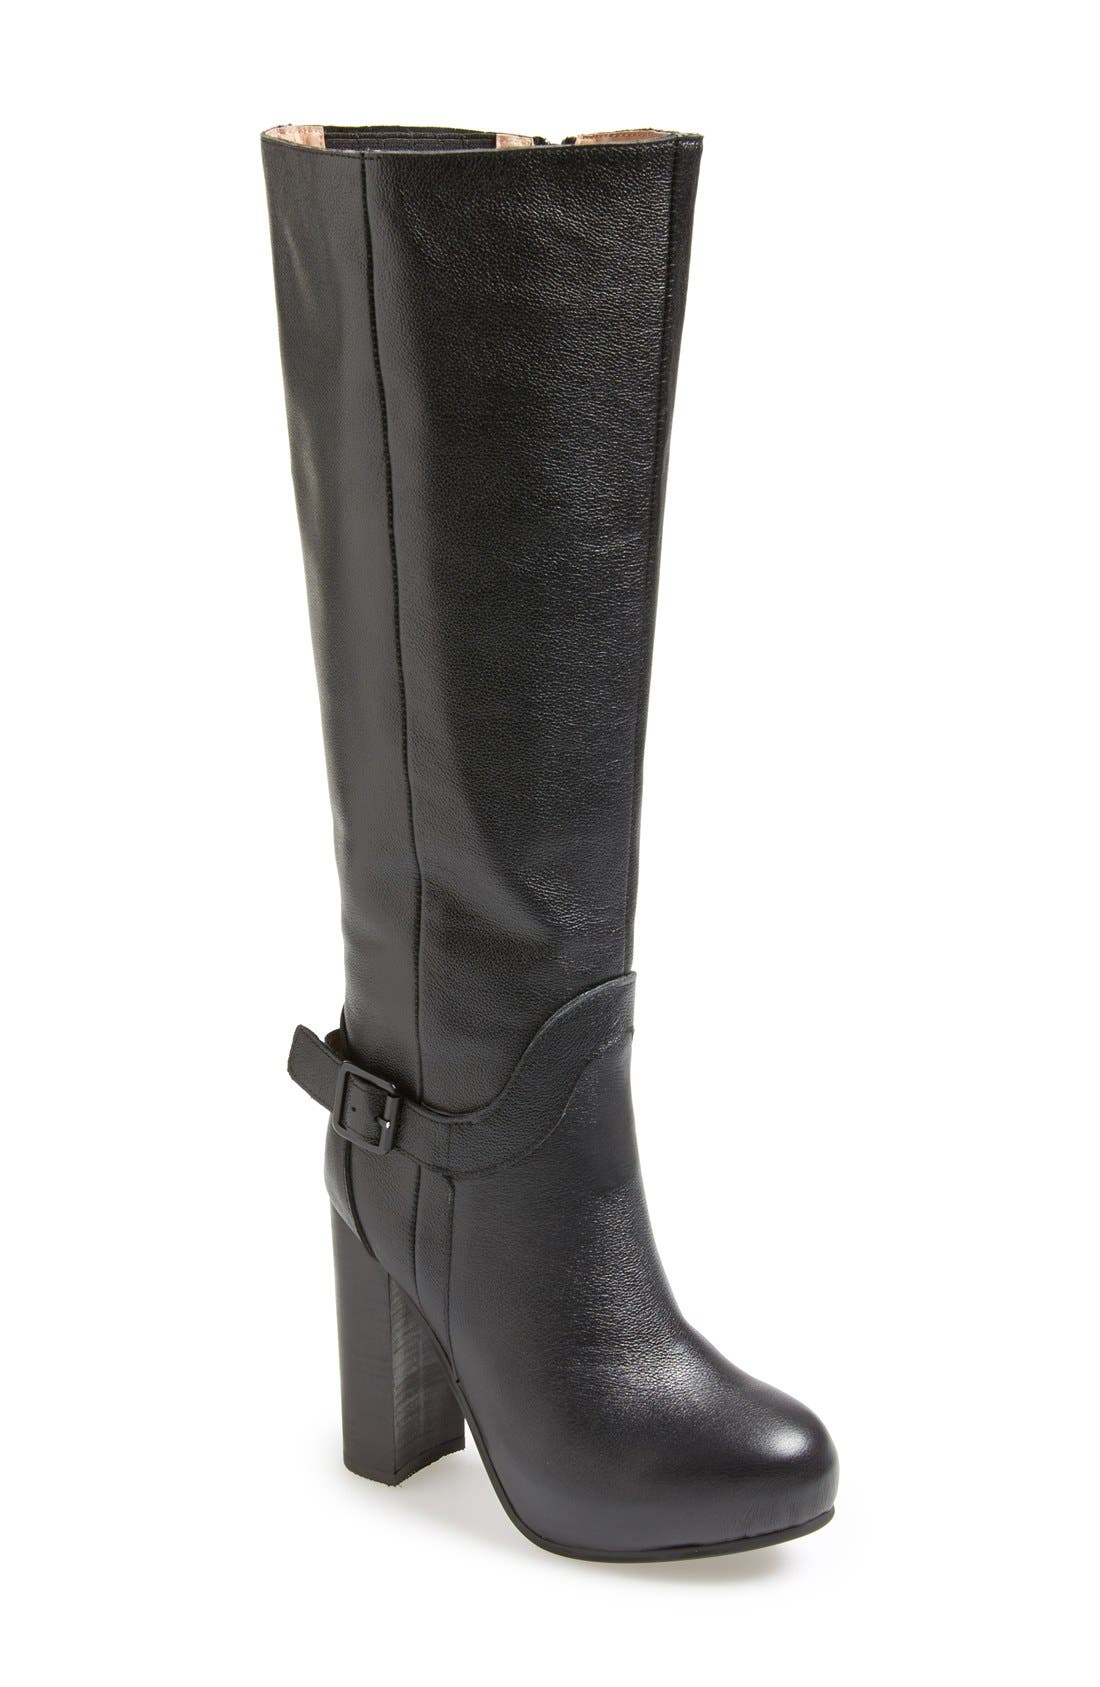 Alternate Image 1 Selected - Jeffrey Campbell 'Tenor' Knee High Leather Boot (Women)